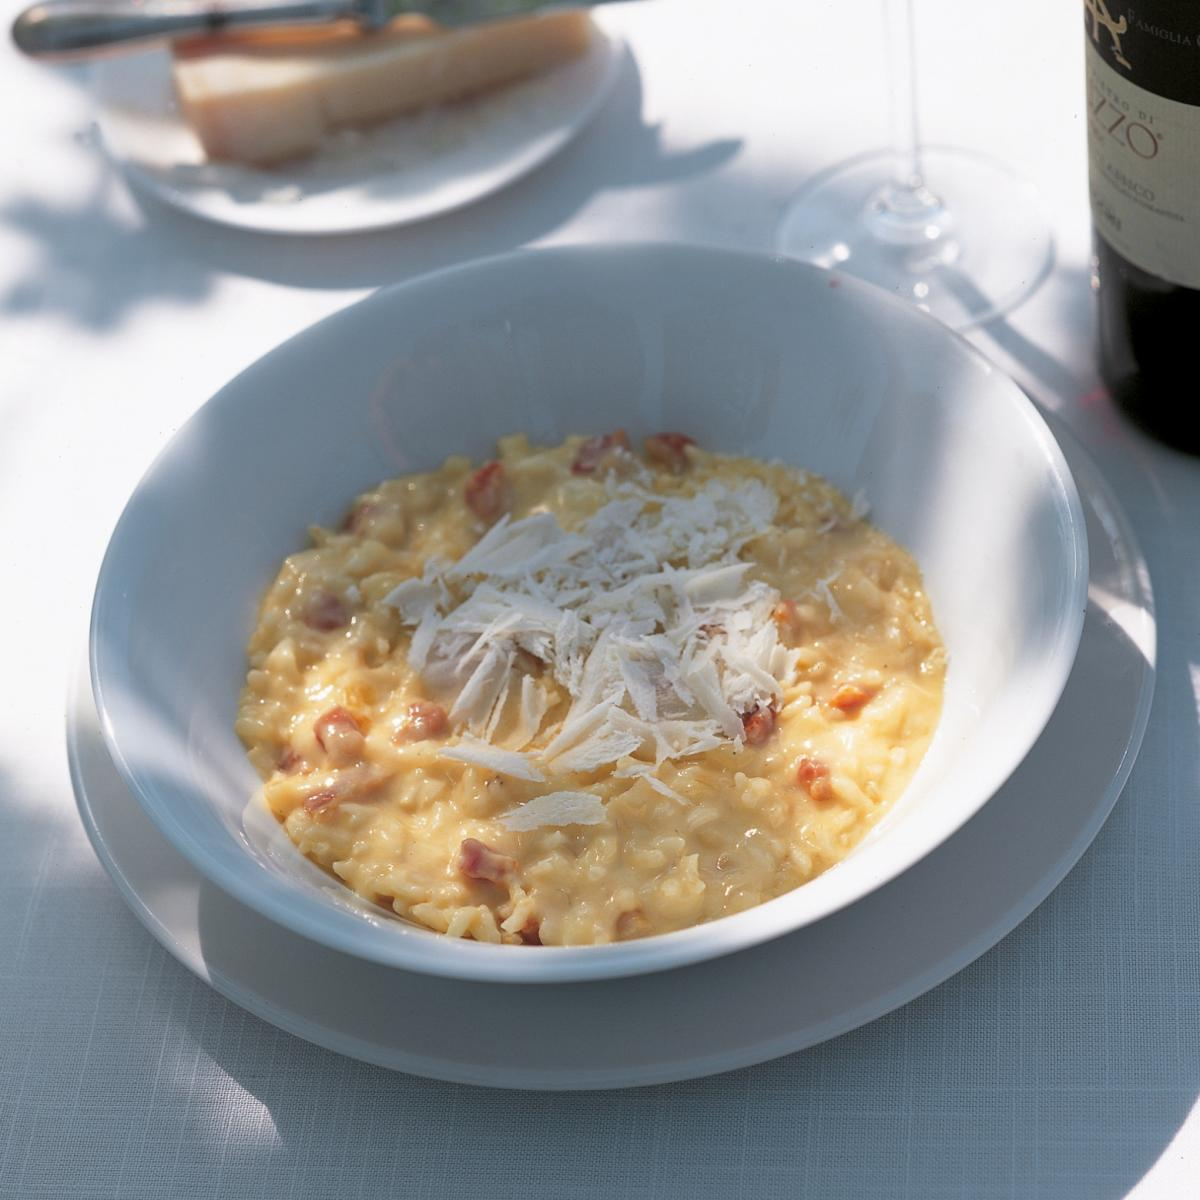 A picture of Delia's Oven-baked Risotto Carbonara recipe